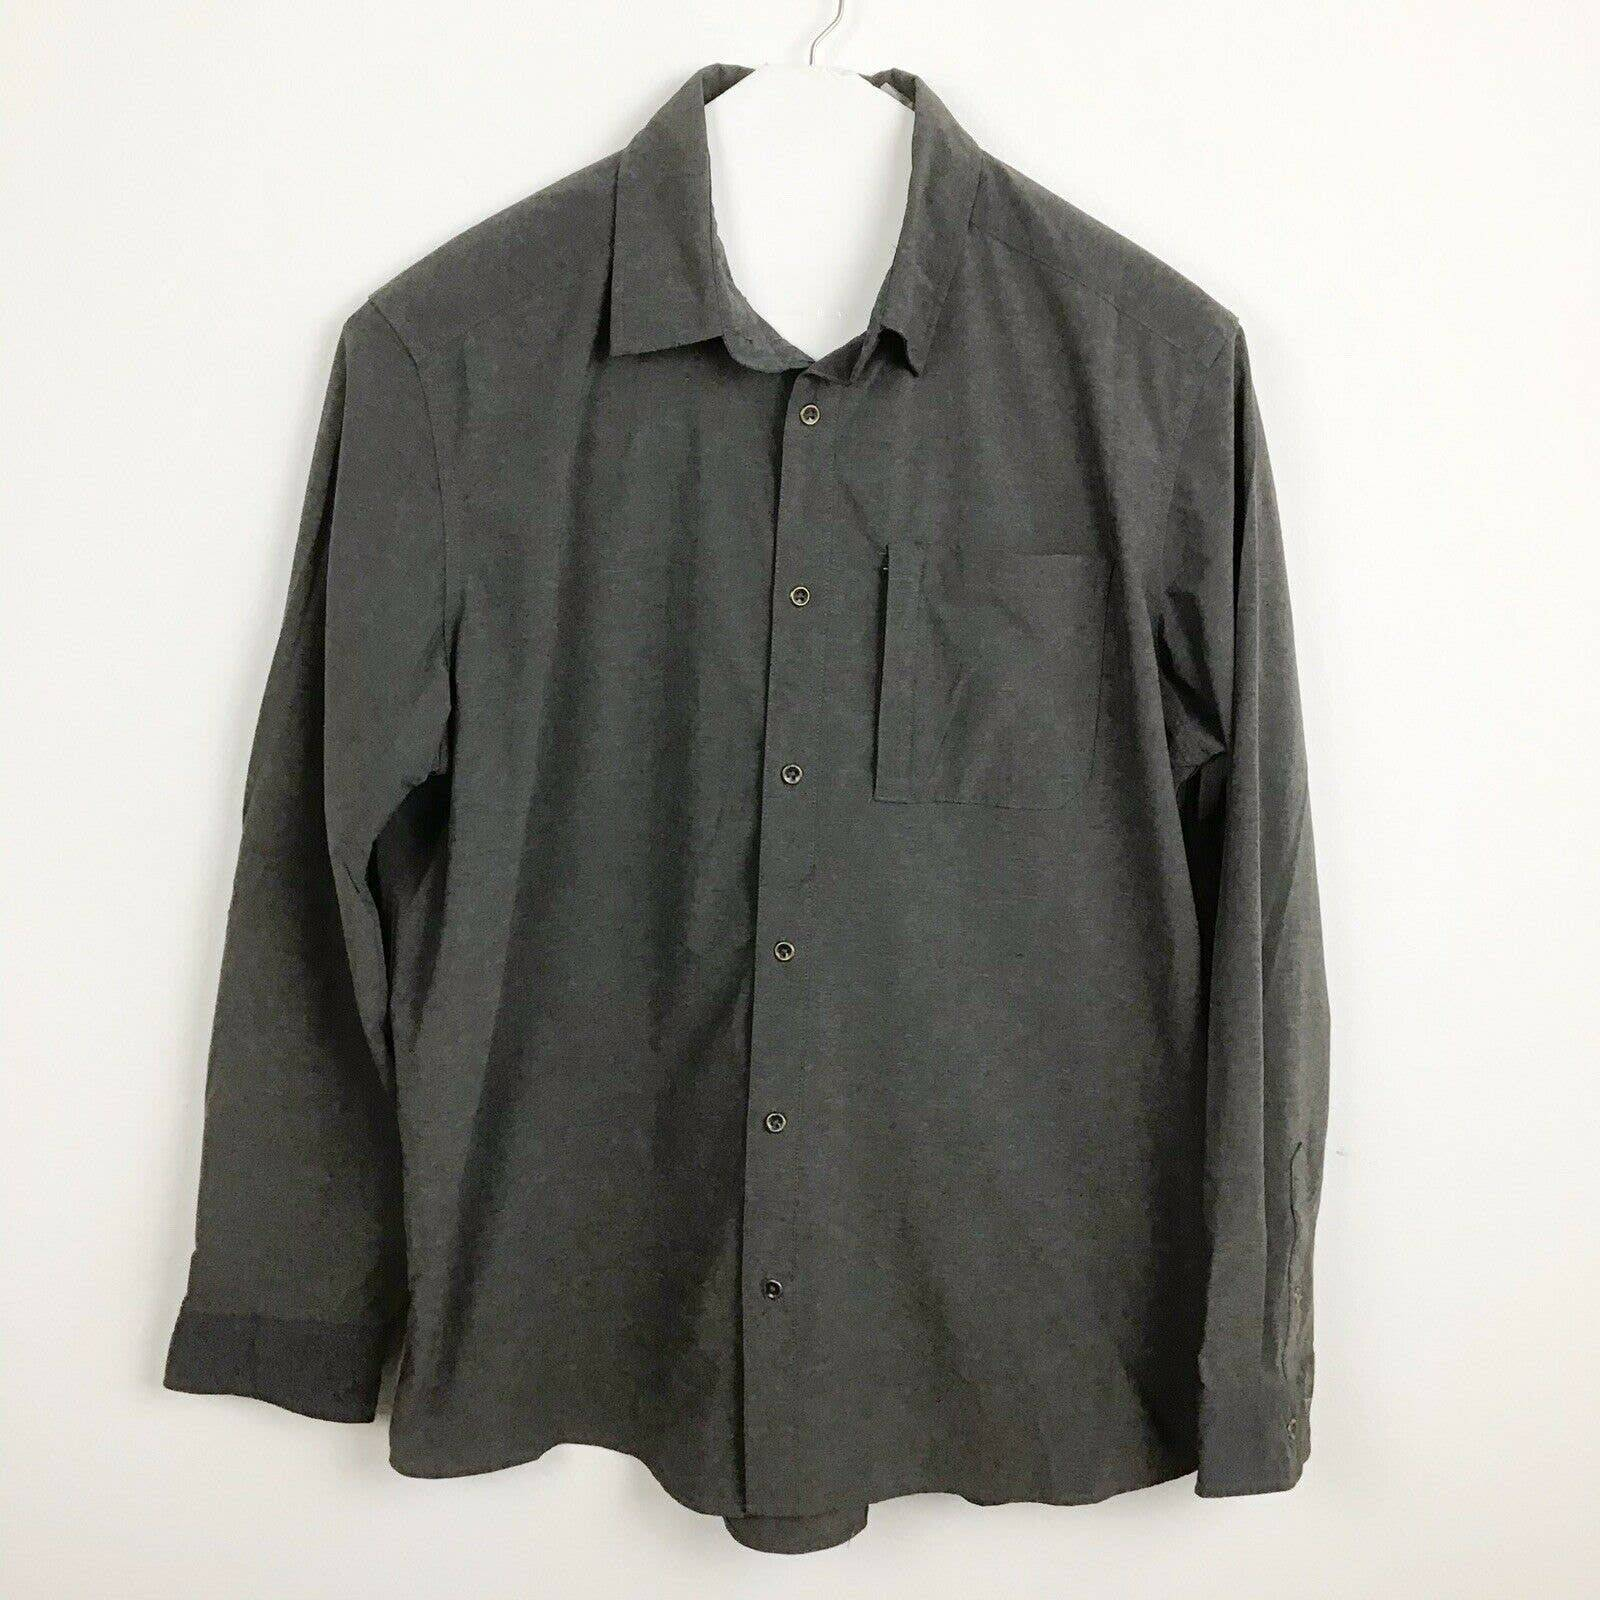 Swiss Tech XL Charcoal Nylon Tech Shirt